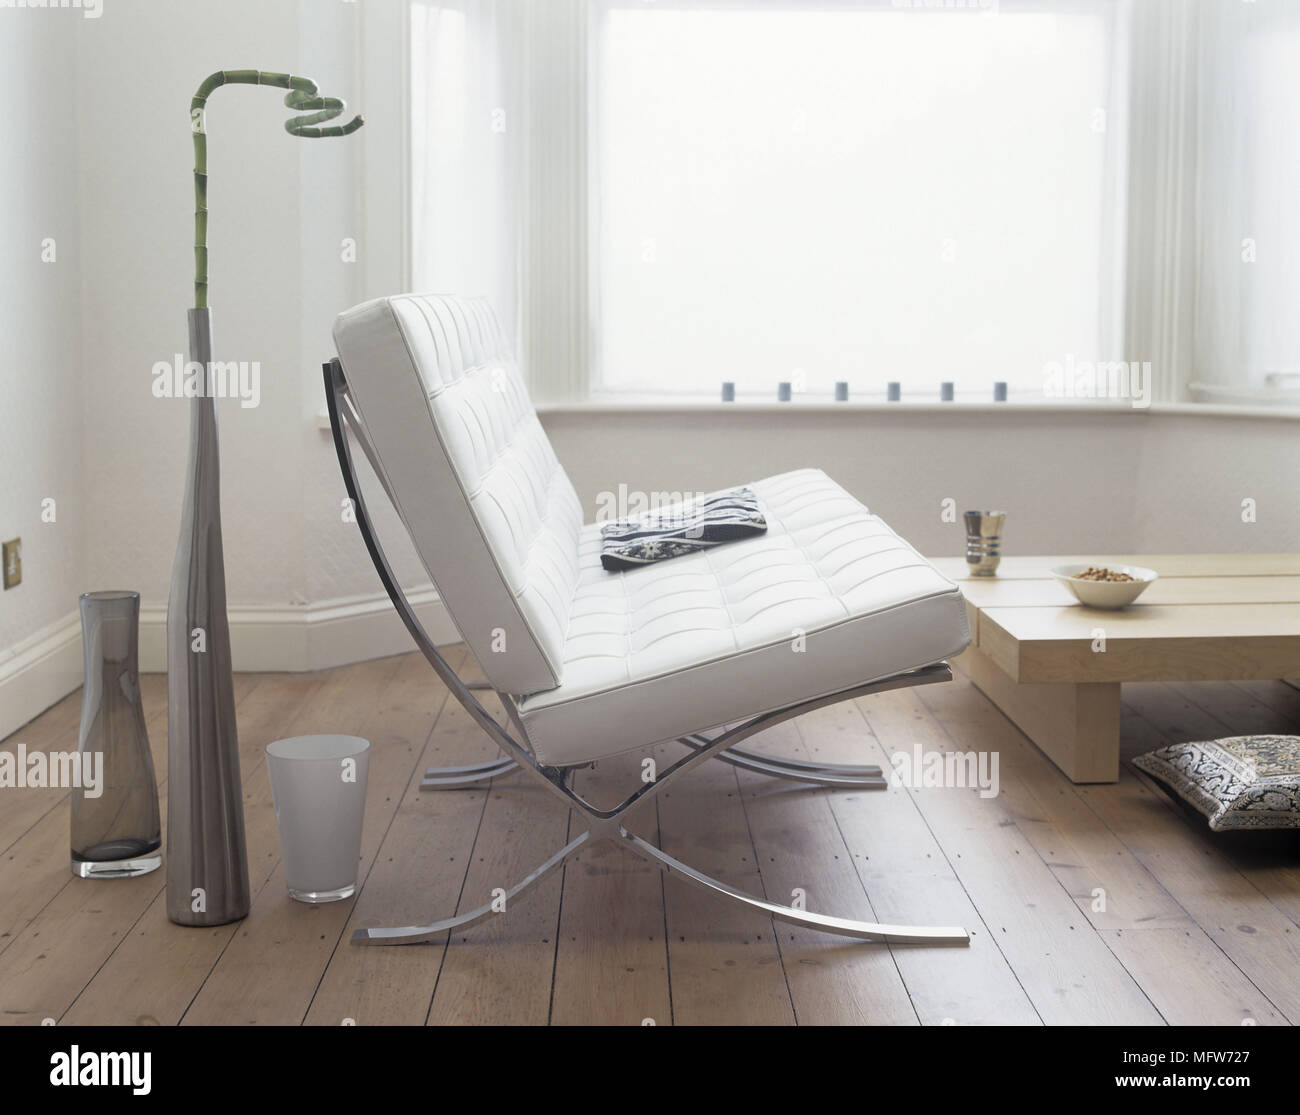 A detail of a modern white sitting room a white leather Barcelona chair by Mies van der Rohe wooden floor glass vases low wooden coffee table & A detail of a modern white sitting room a white leather Barcelona ...